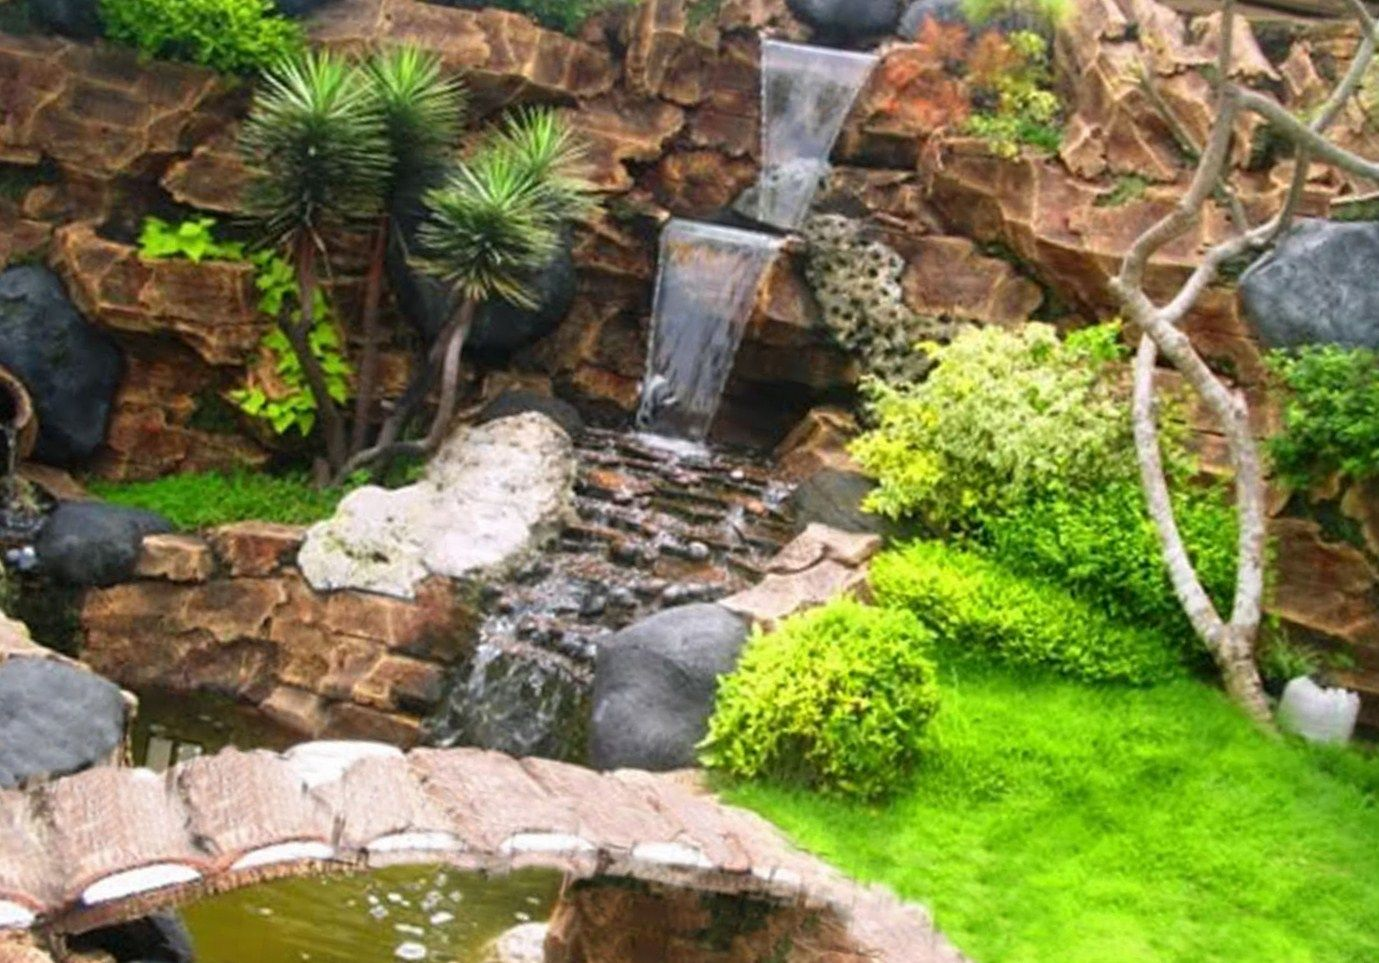 design garden collection design garden pictures typatcom garden design ideas inspiration pictures homify 3d garden design - Gardens Designs